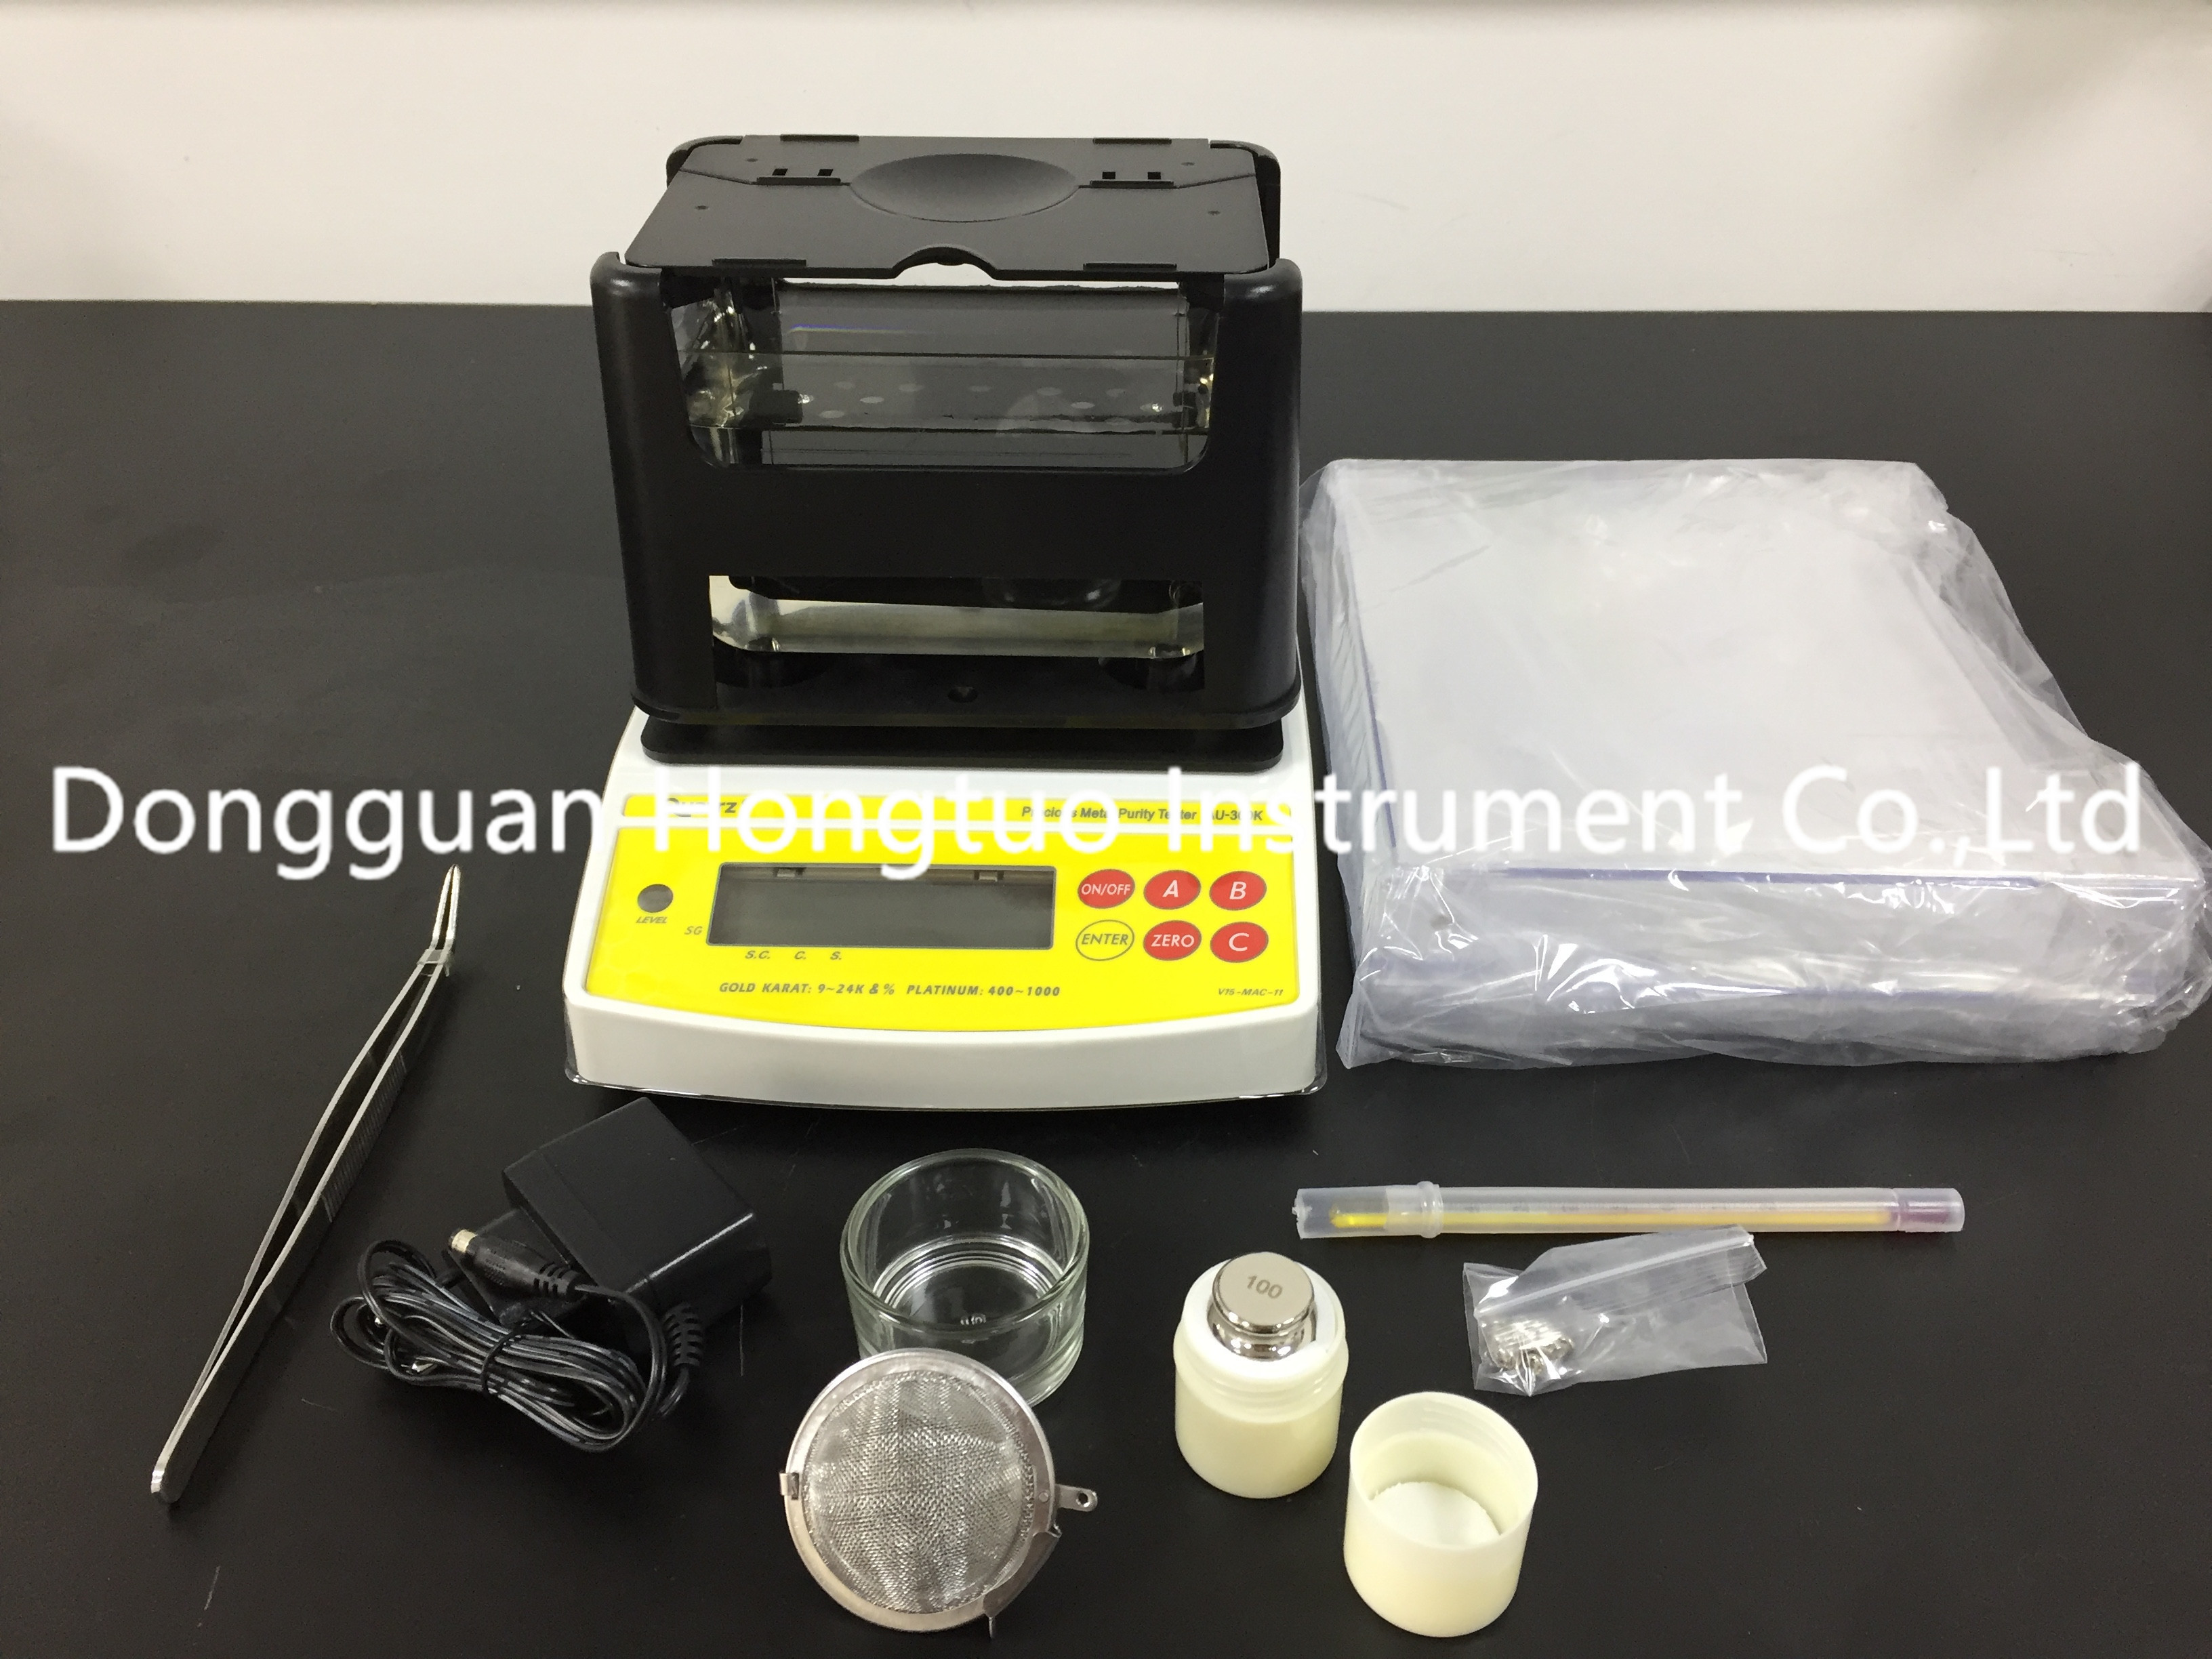 AU-600K Gold Testing Equipment